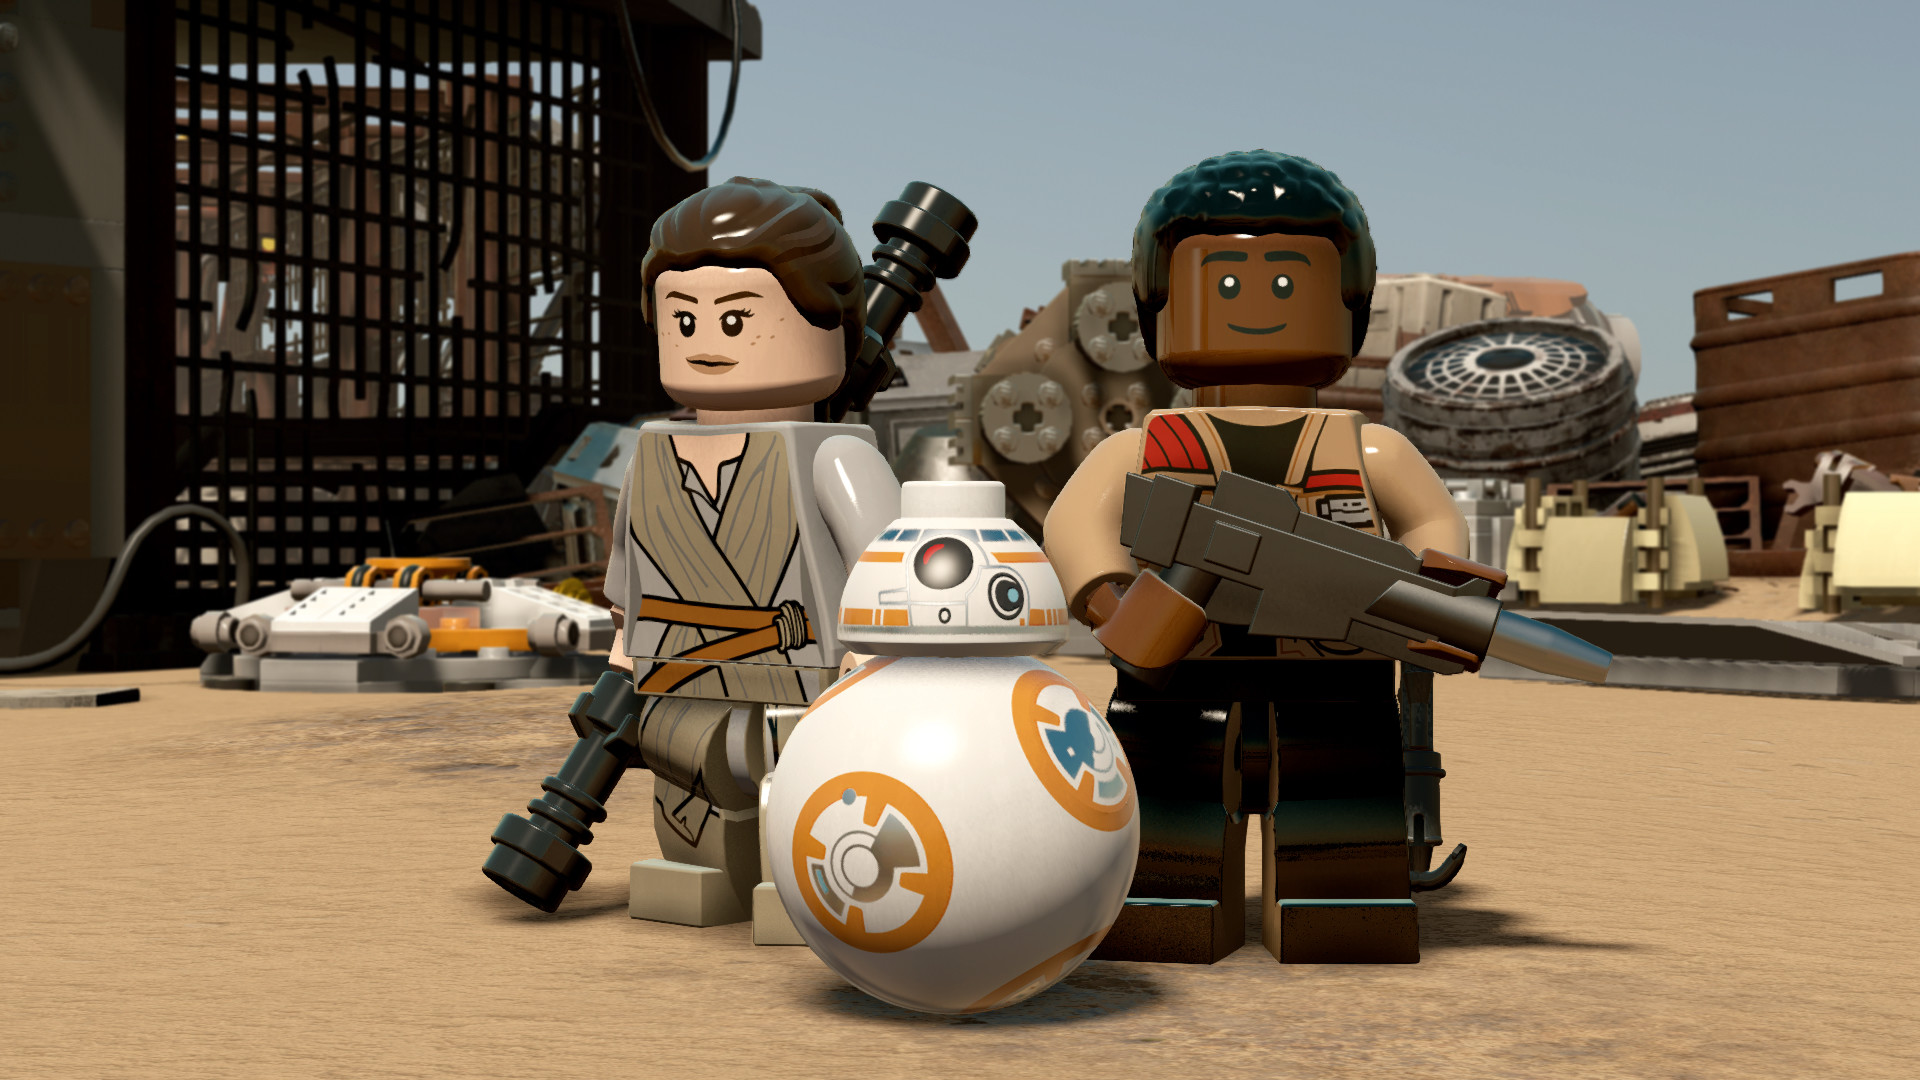 Lego Star Wars The Force Awakens Download For Free